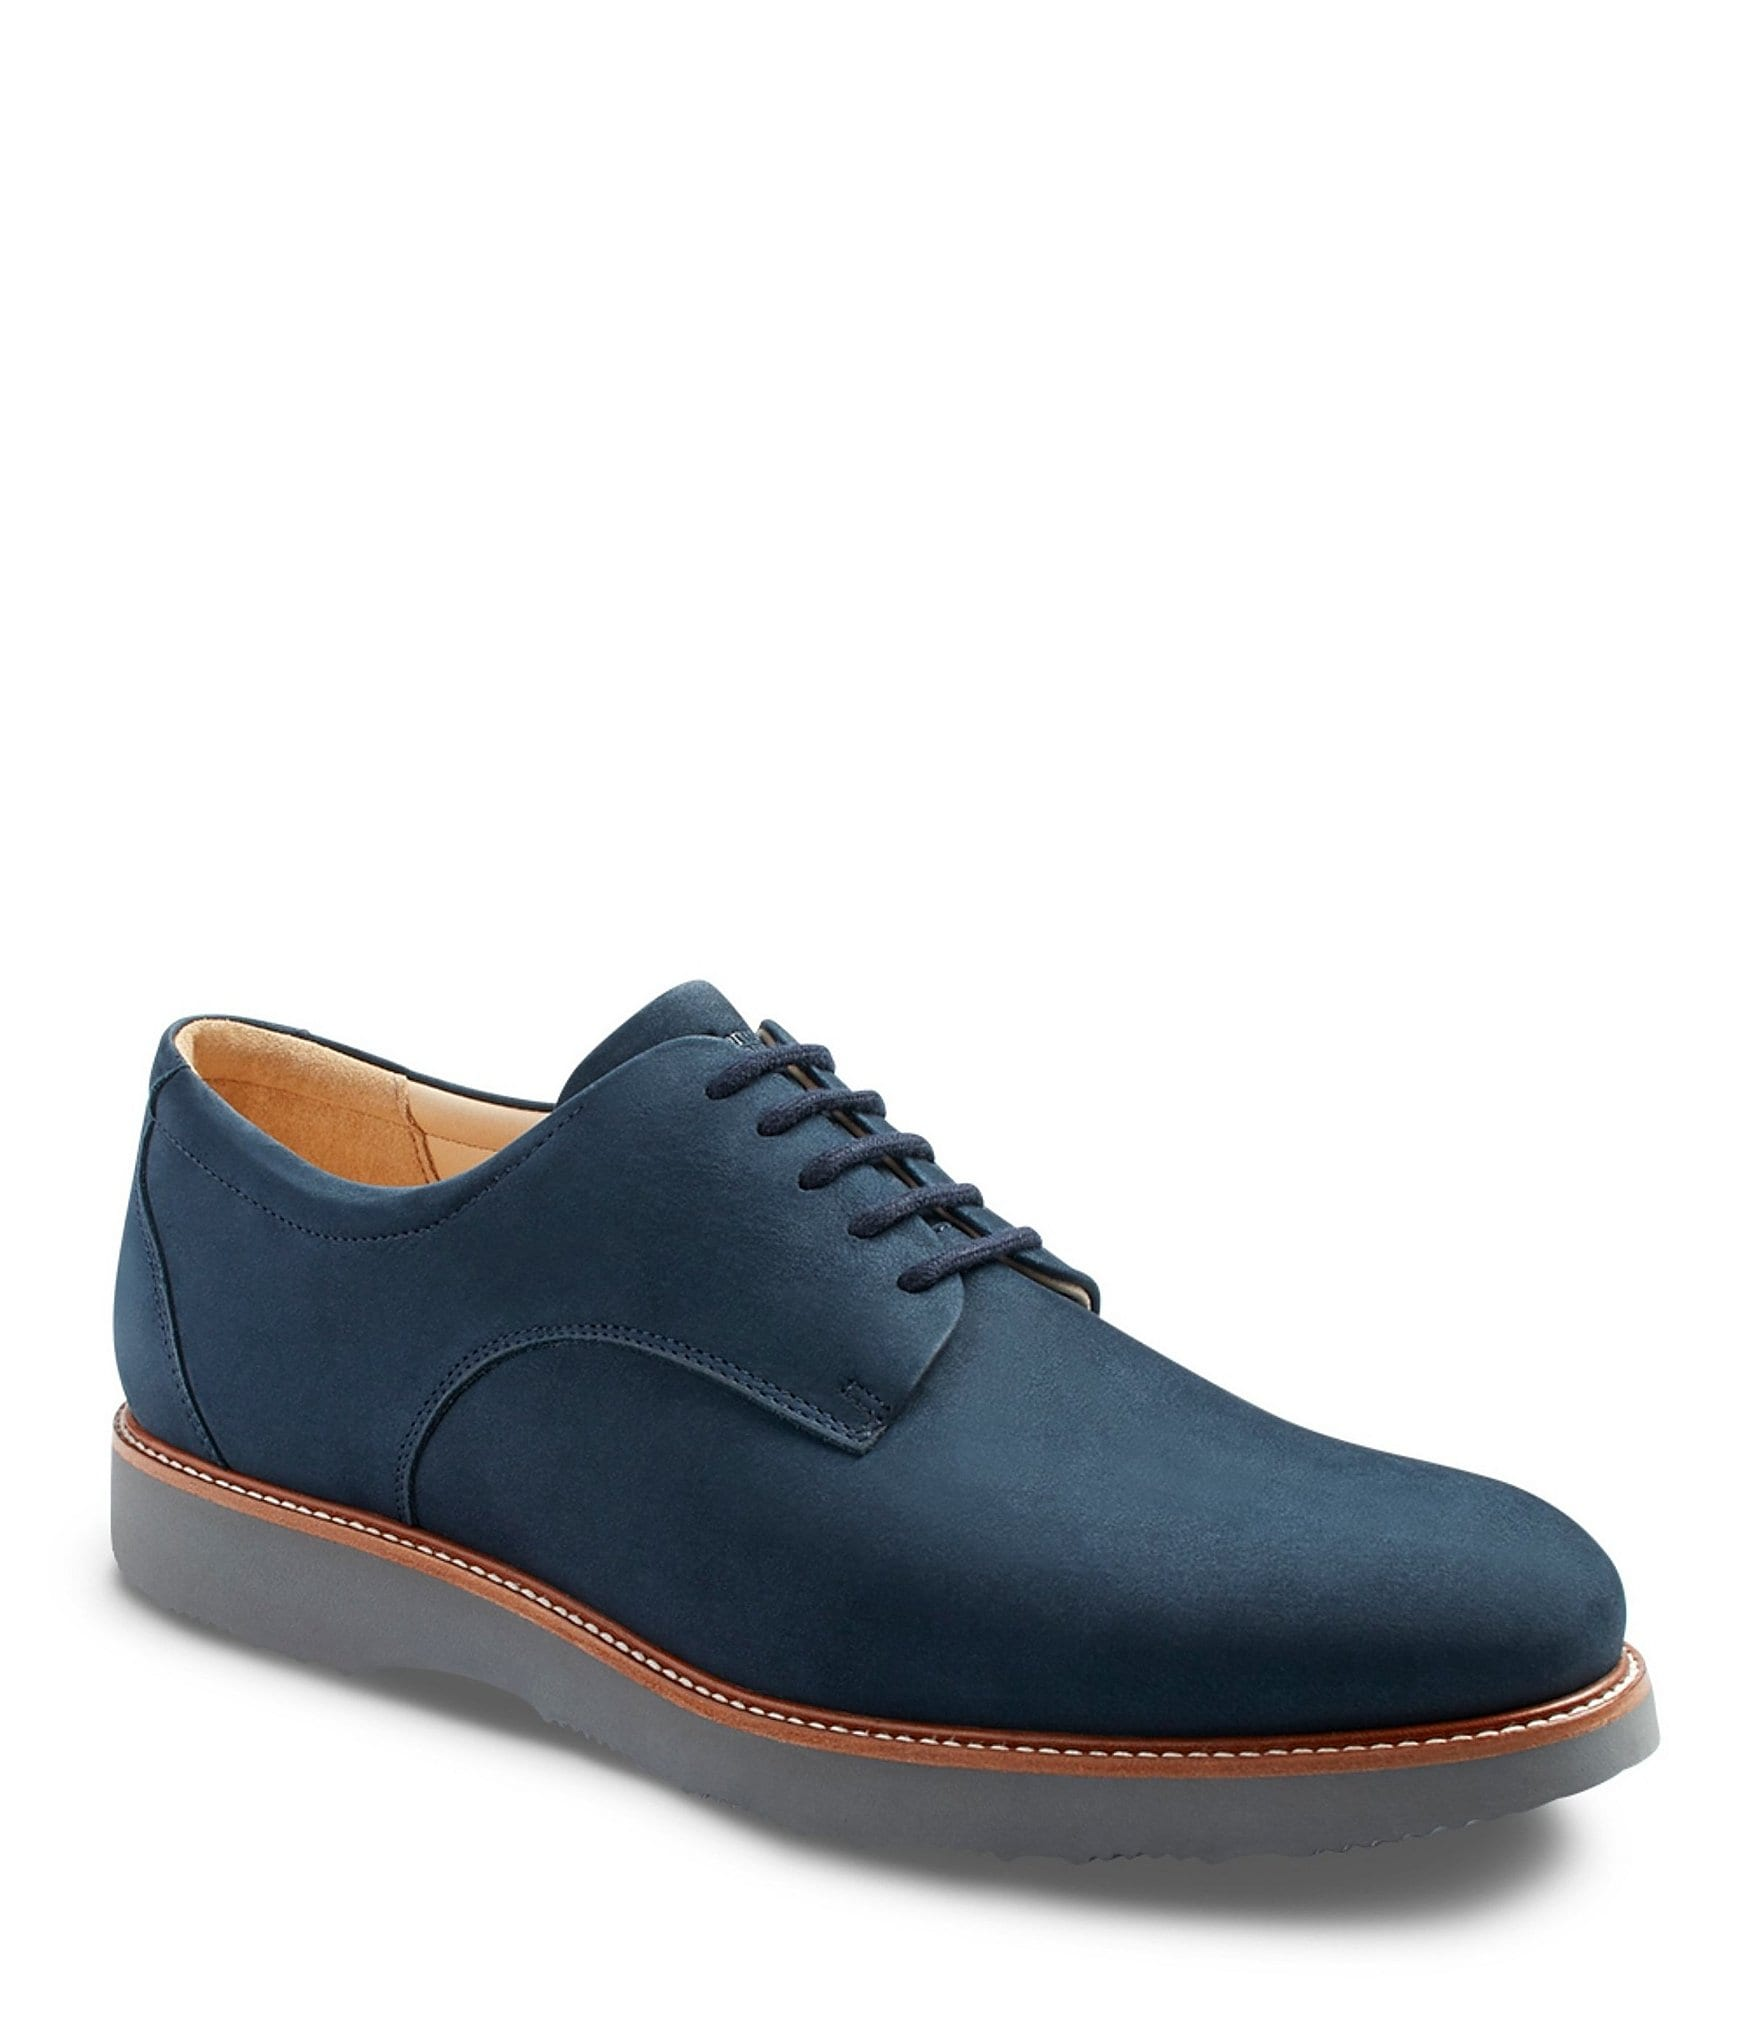 What Mens Shoes Are On Sale At Dillards